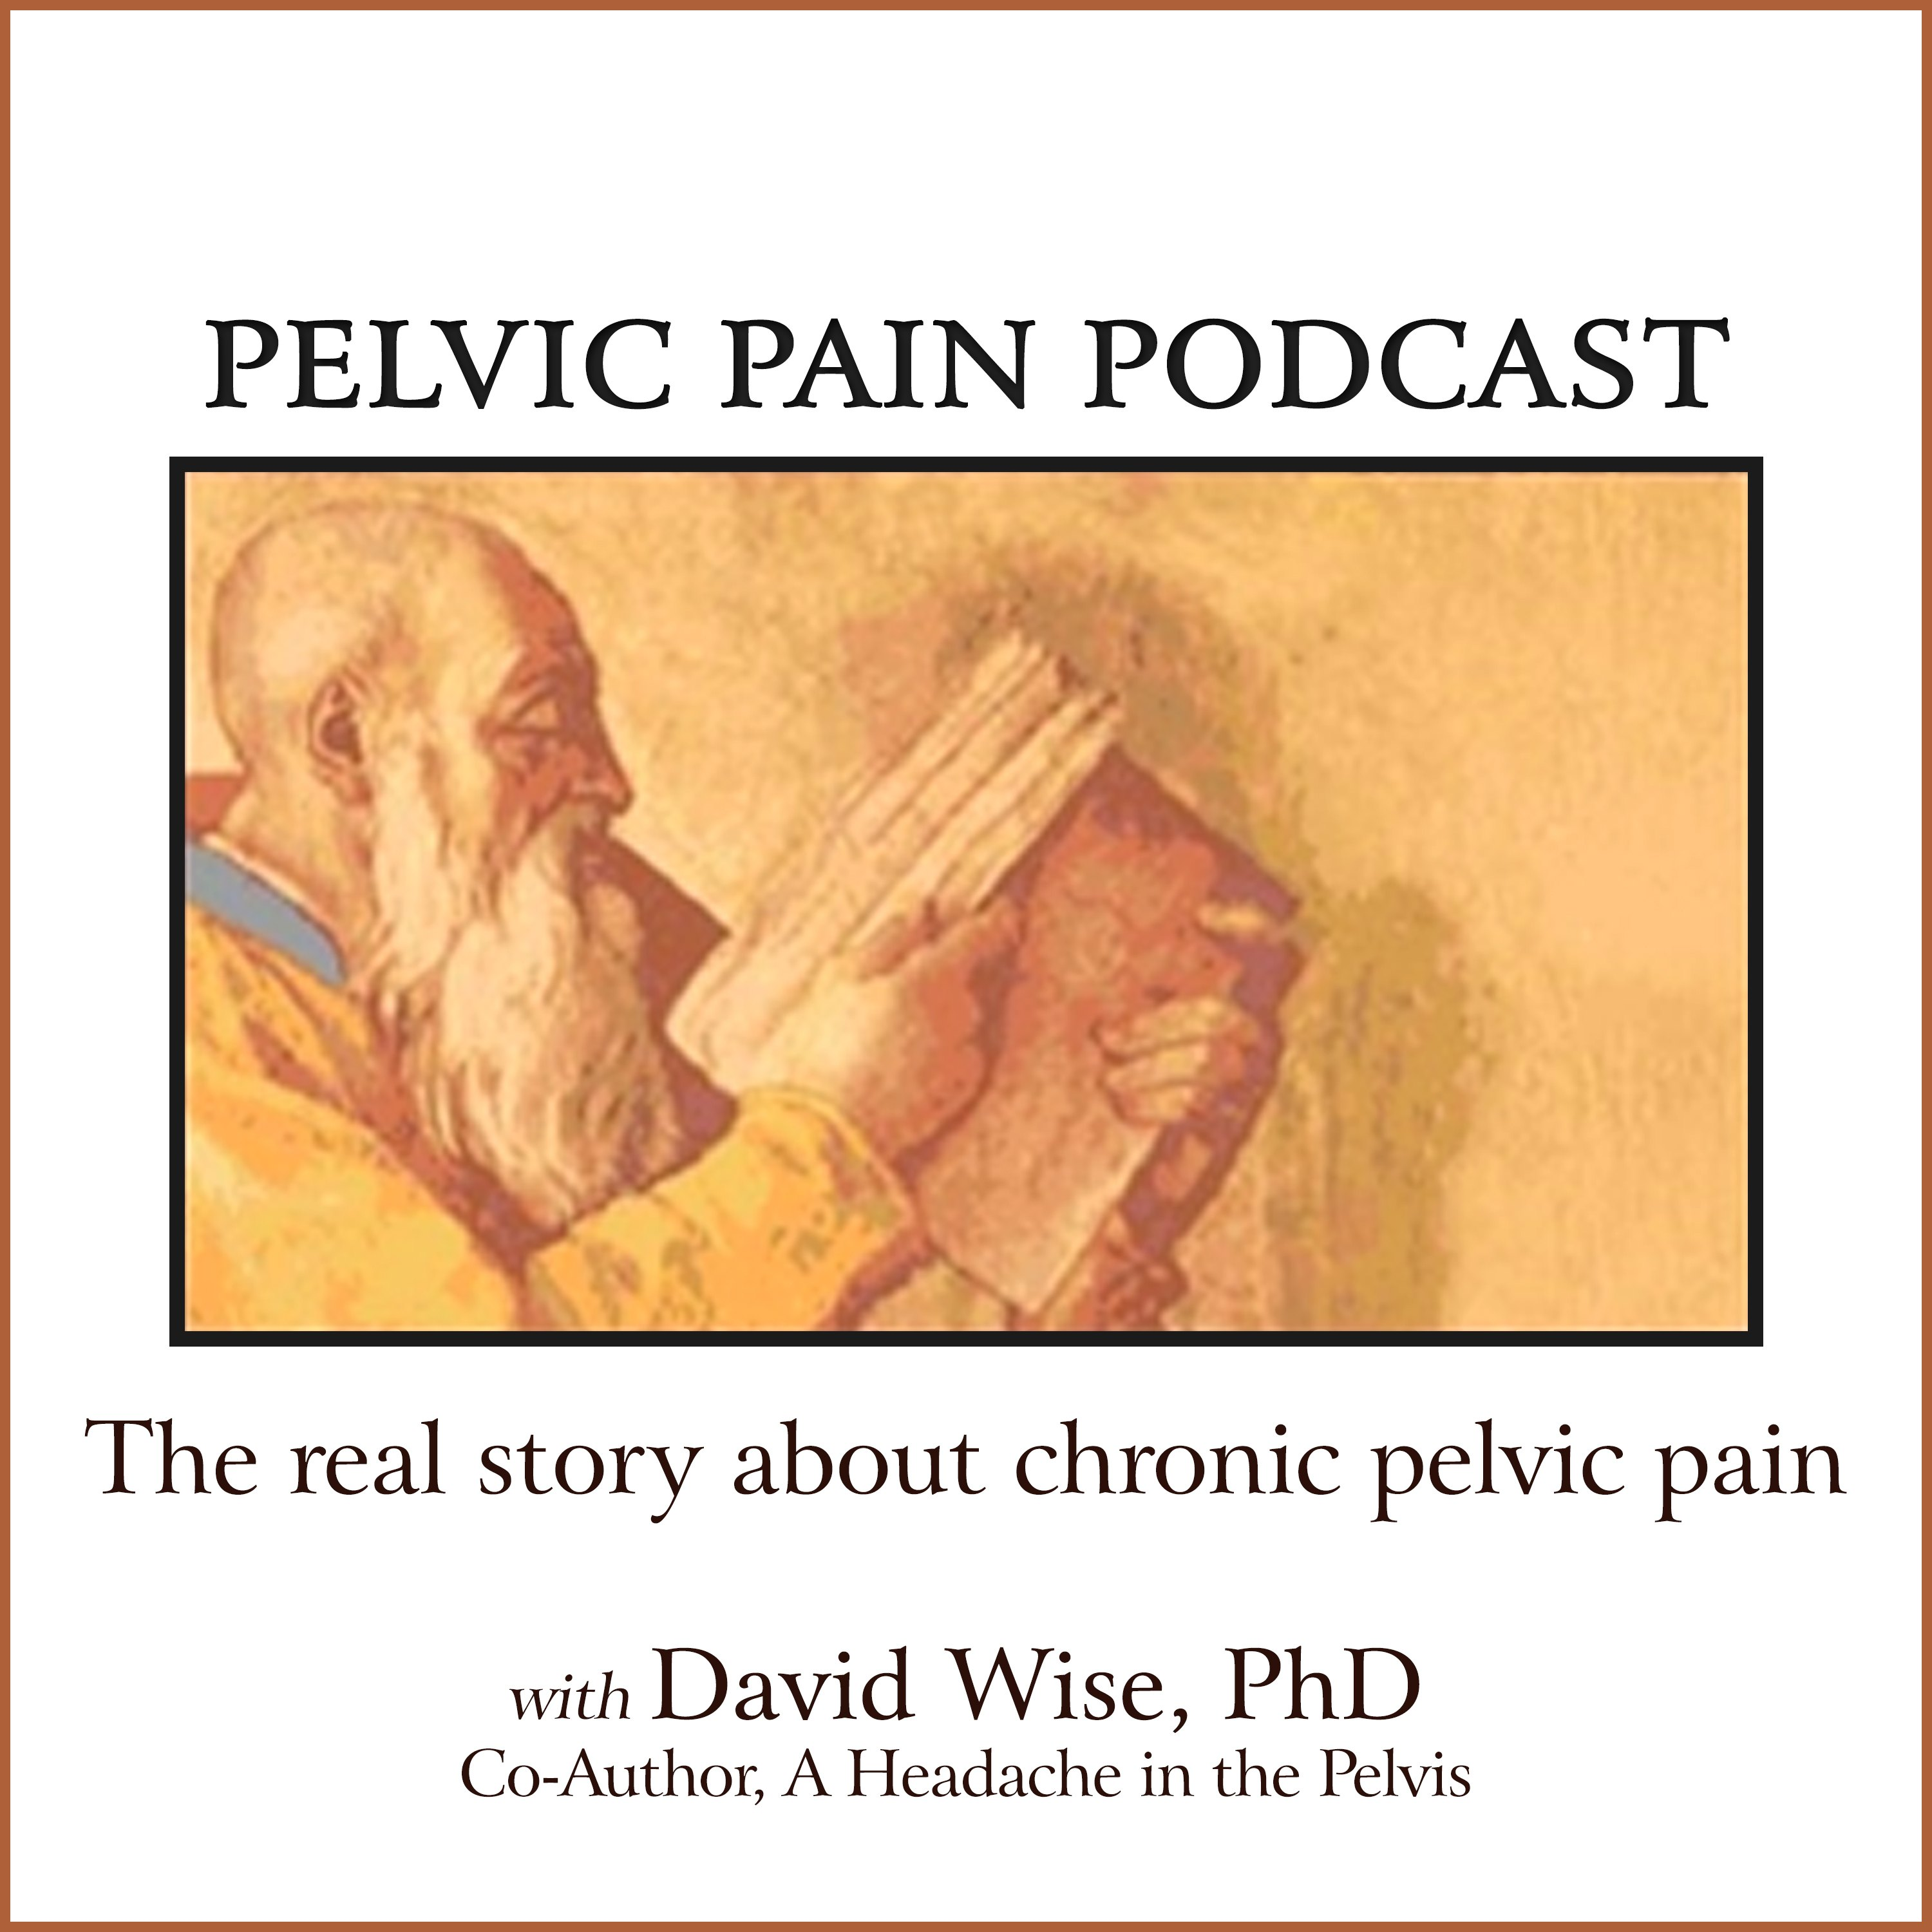 Pelvic Pain Podcast|The Real Story About Chronic Pelvic Pain show art